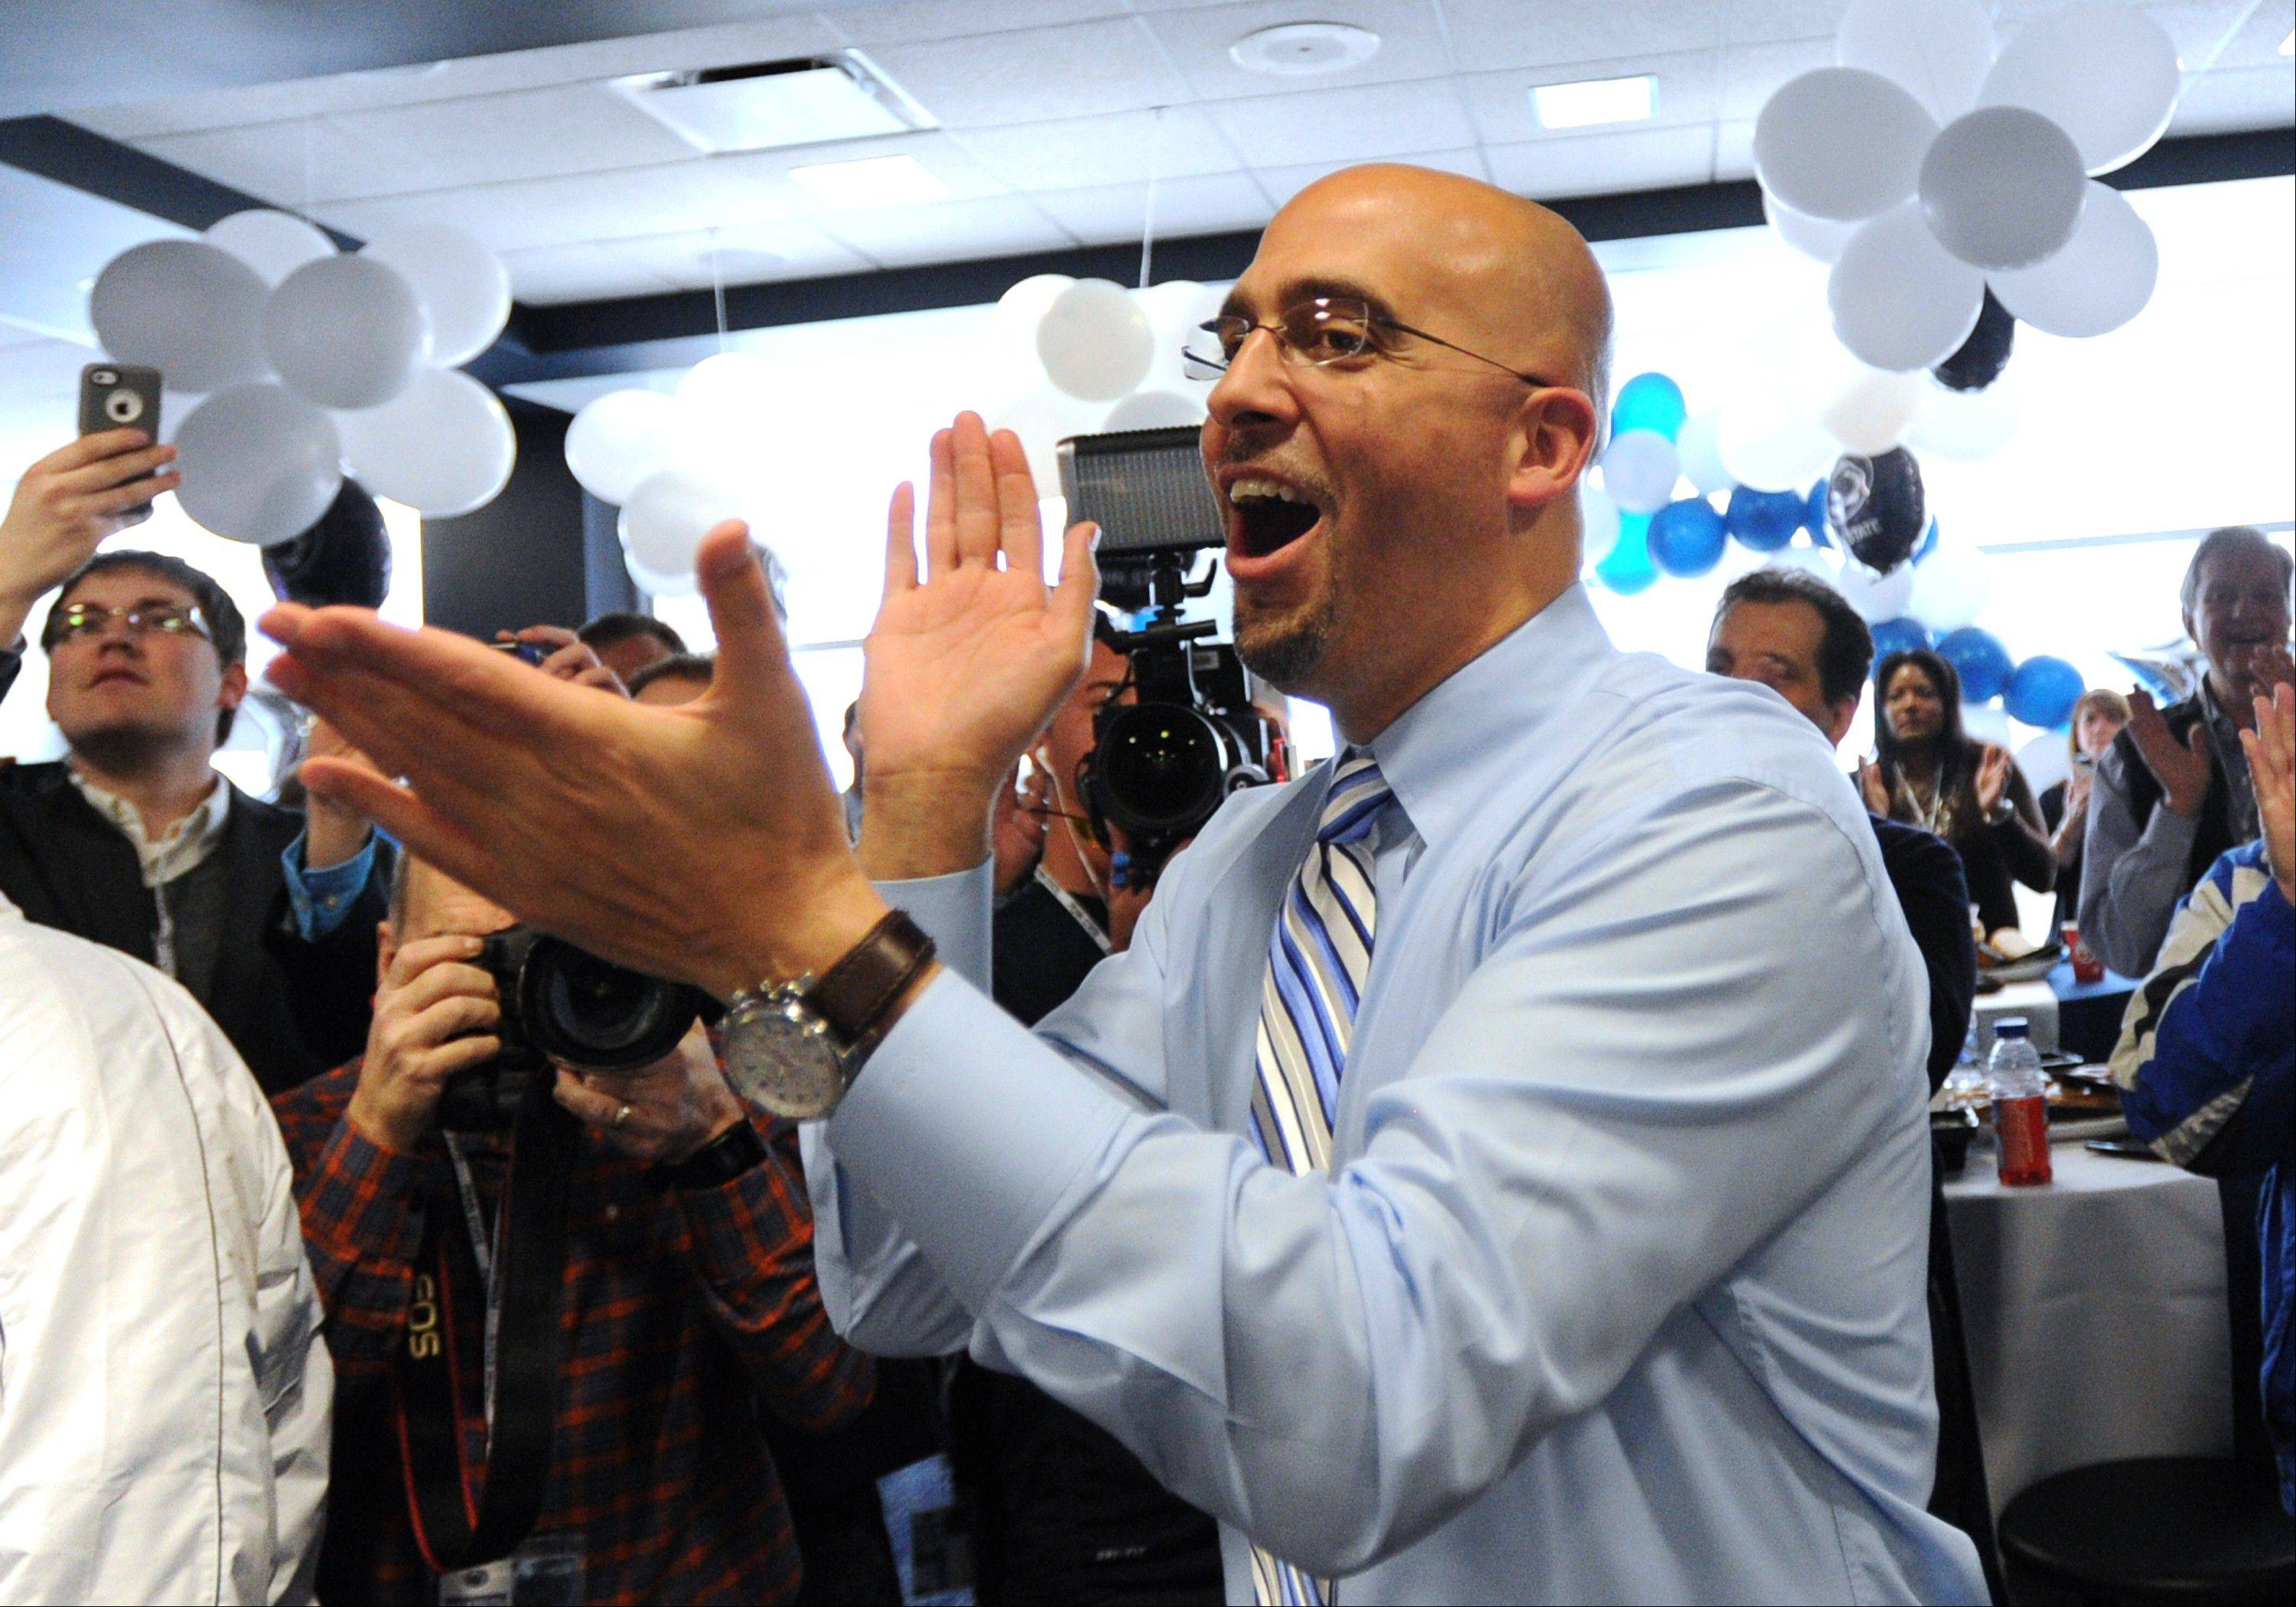 Penn State football coach James Franklin celebrates the announcement of a recruit committing to the school during national signing day Wednesday in State College, Pa.